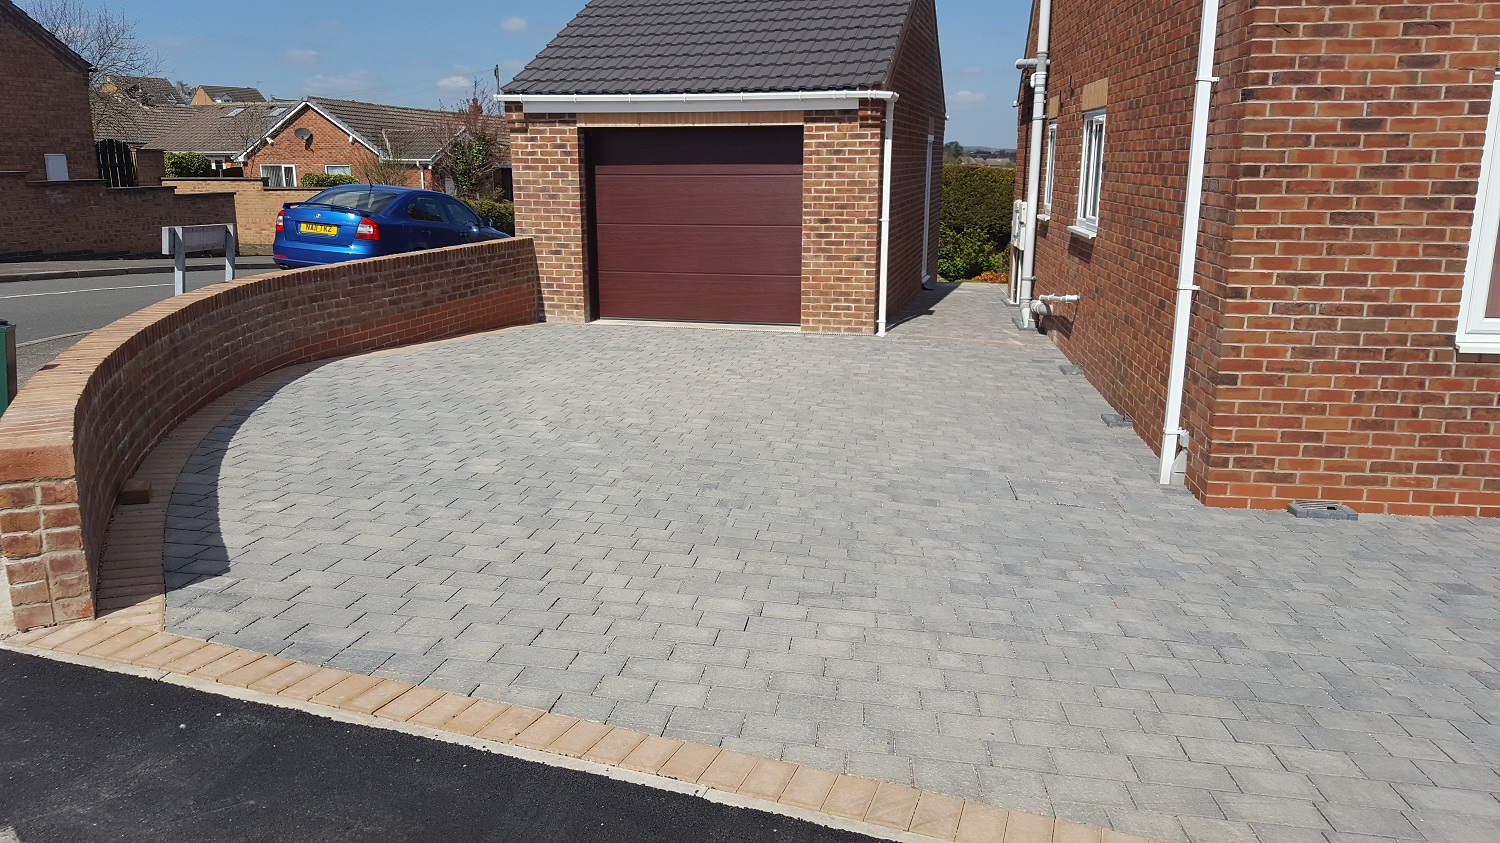 C9 Plaspave Modena Granite Stone Block Paving Driveway at Inkersall in Chesterfield